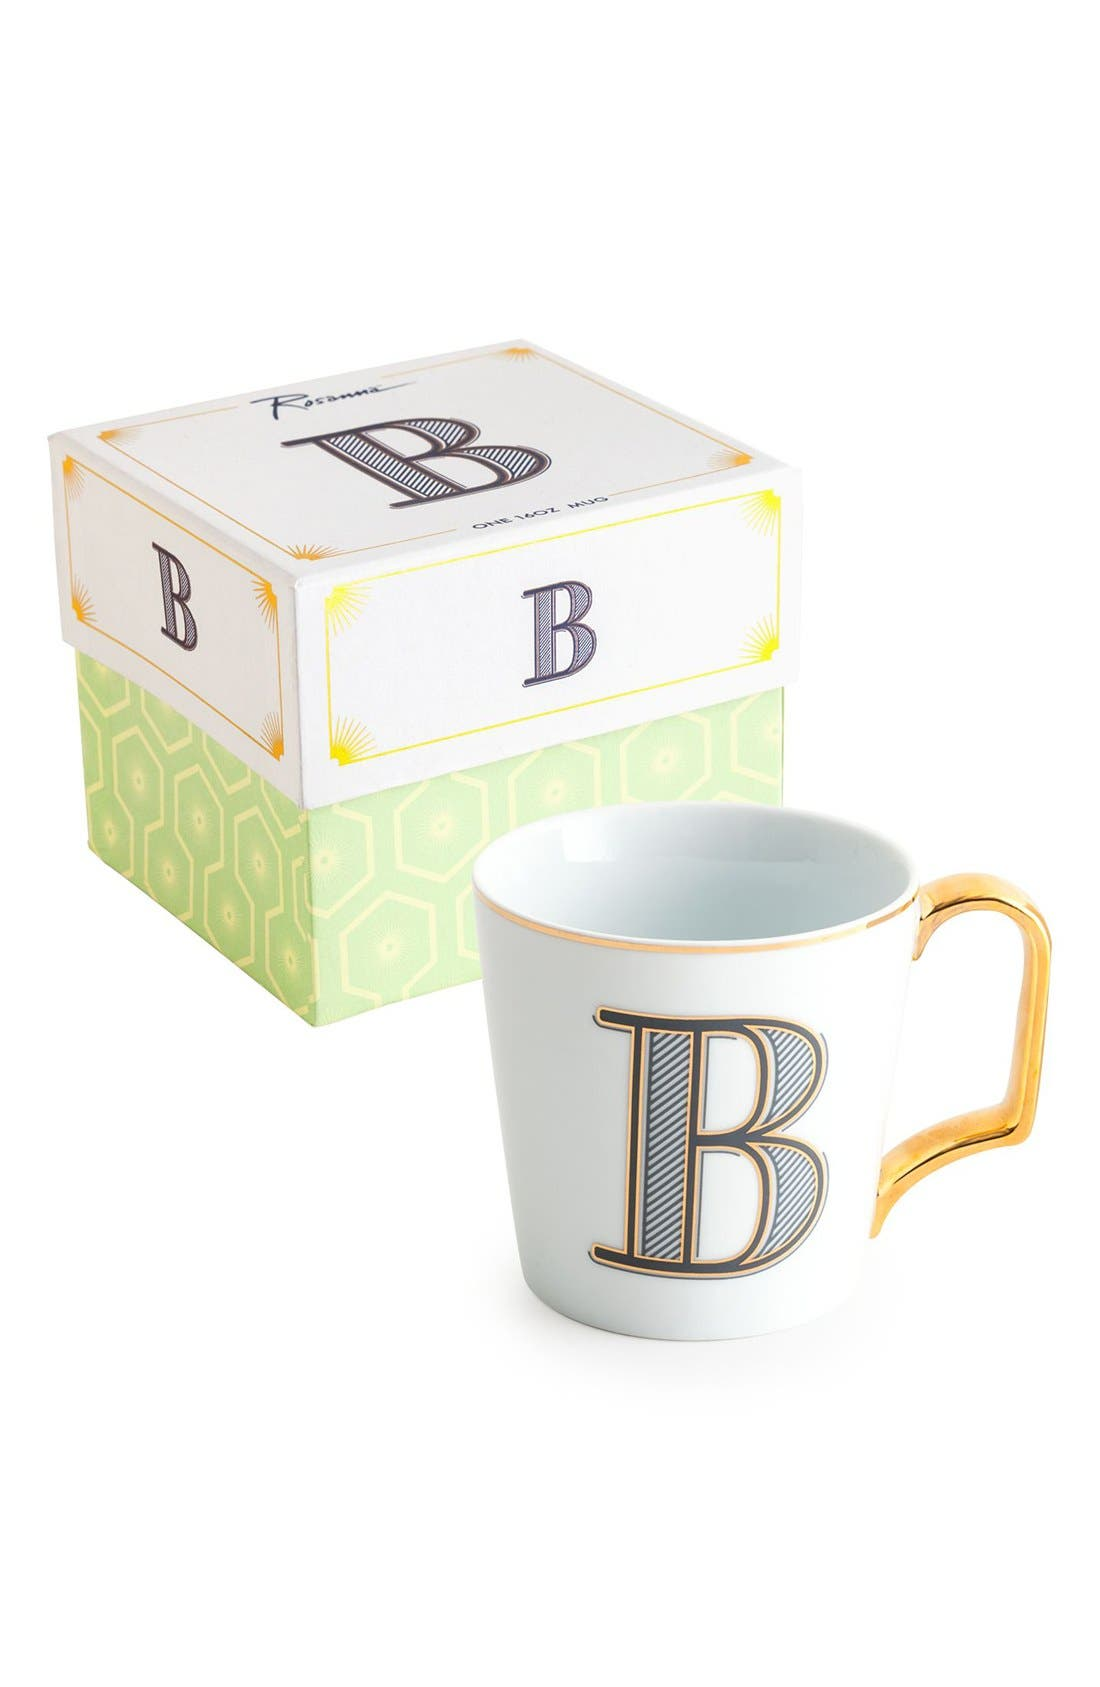 Monogram Porcelain Coffee Mug,                             Main thumbnail 1, color,